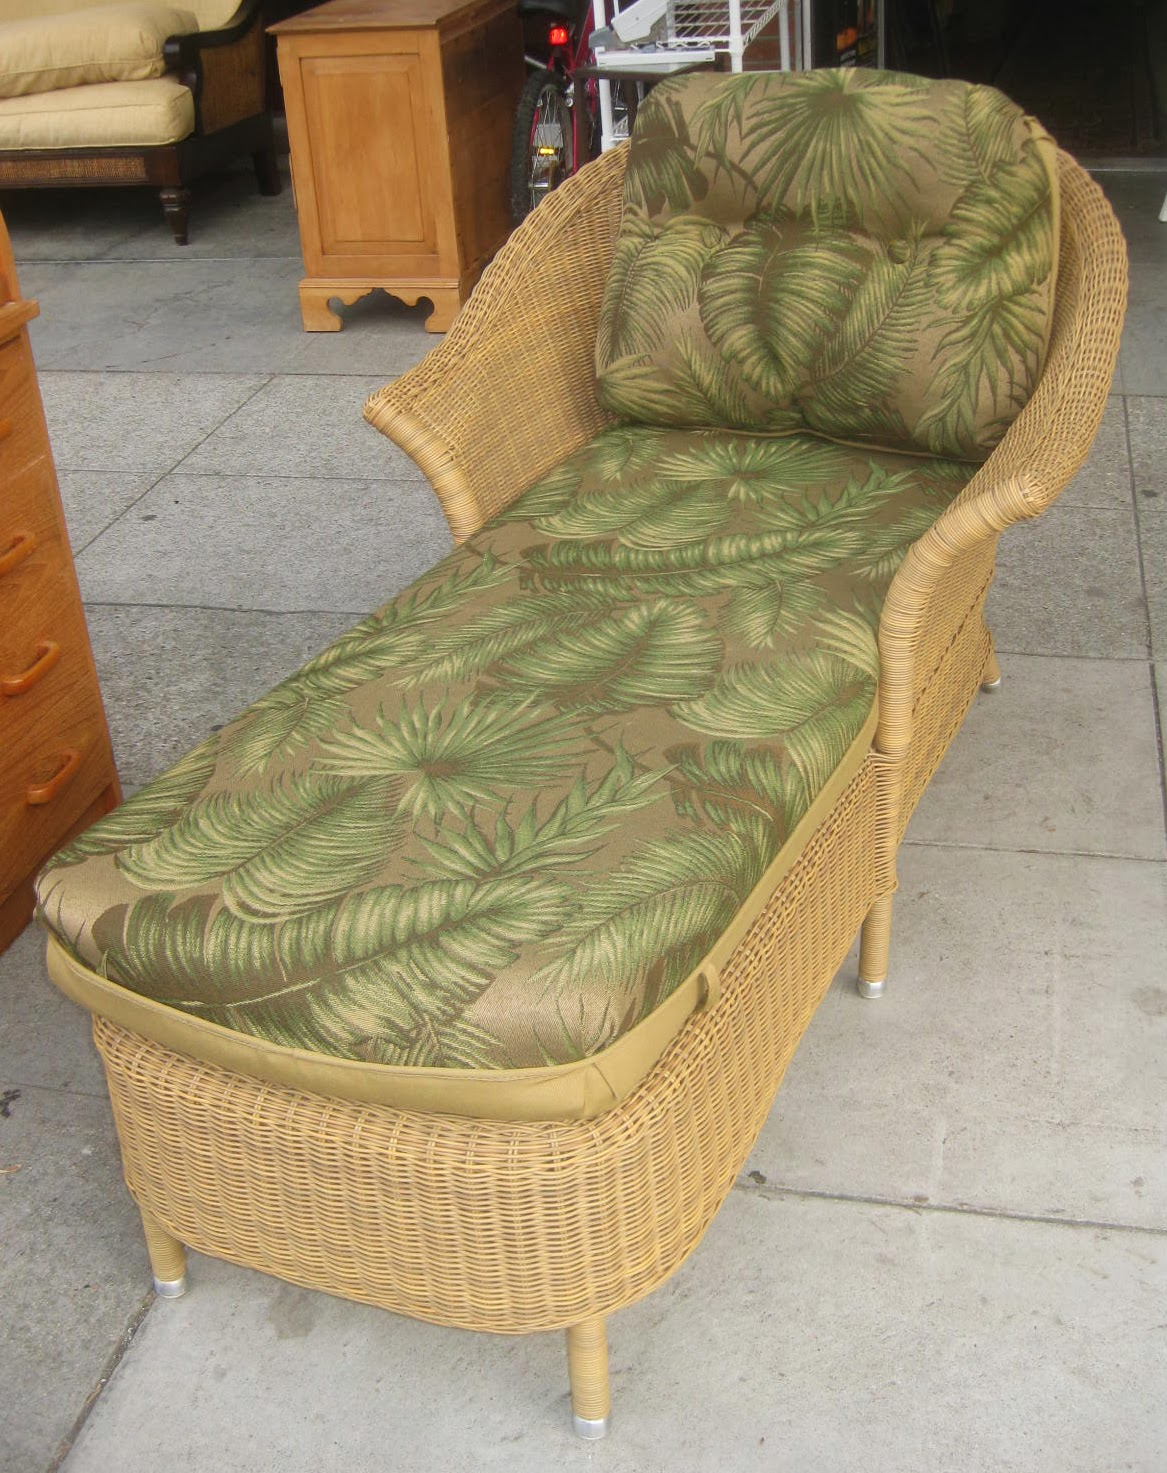 Uhuru furniture collectibles sold wicker chaise for Black wicker chaise lounge